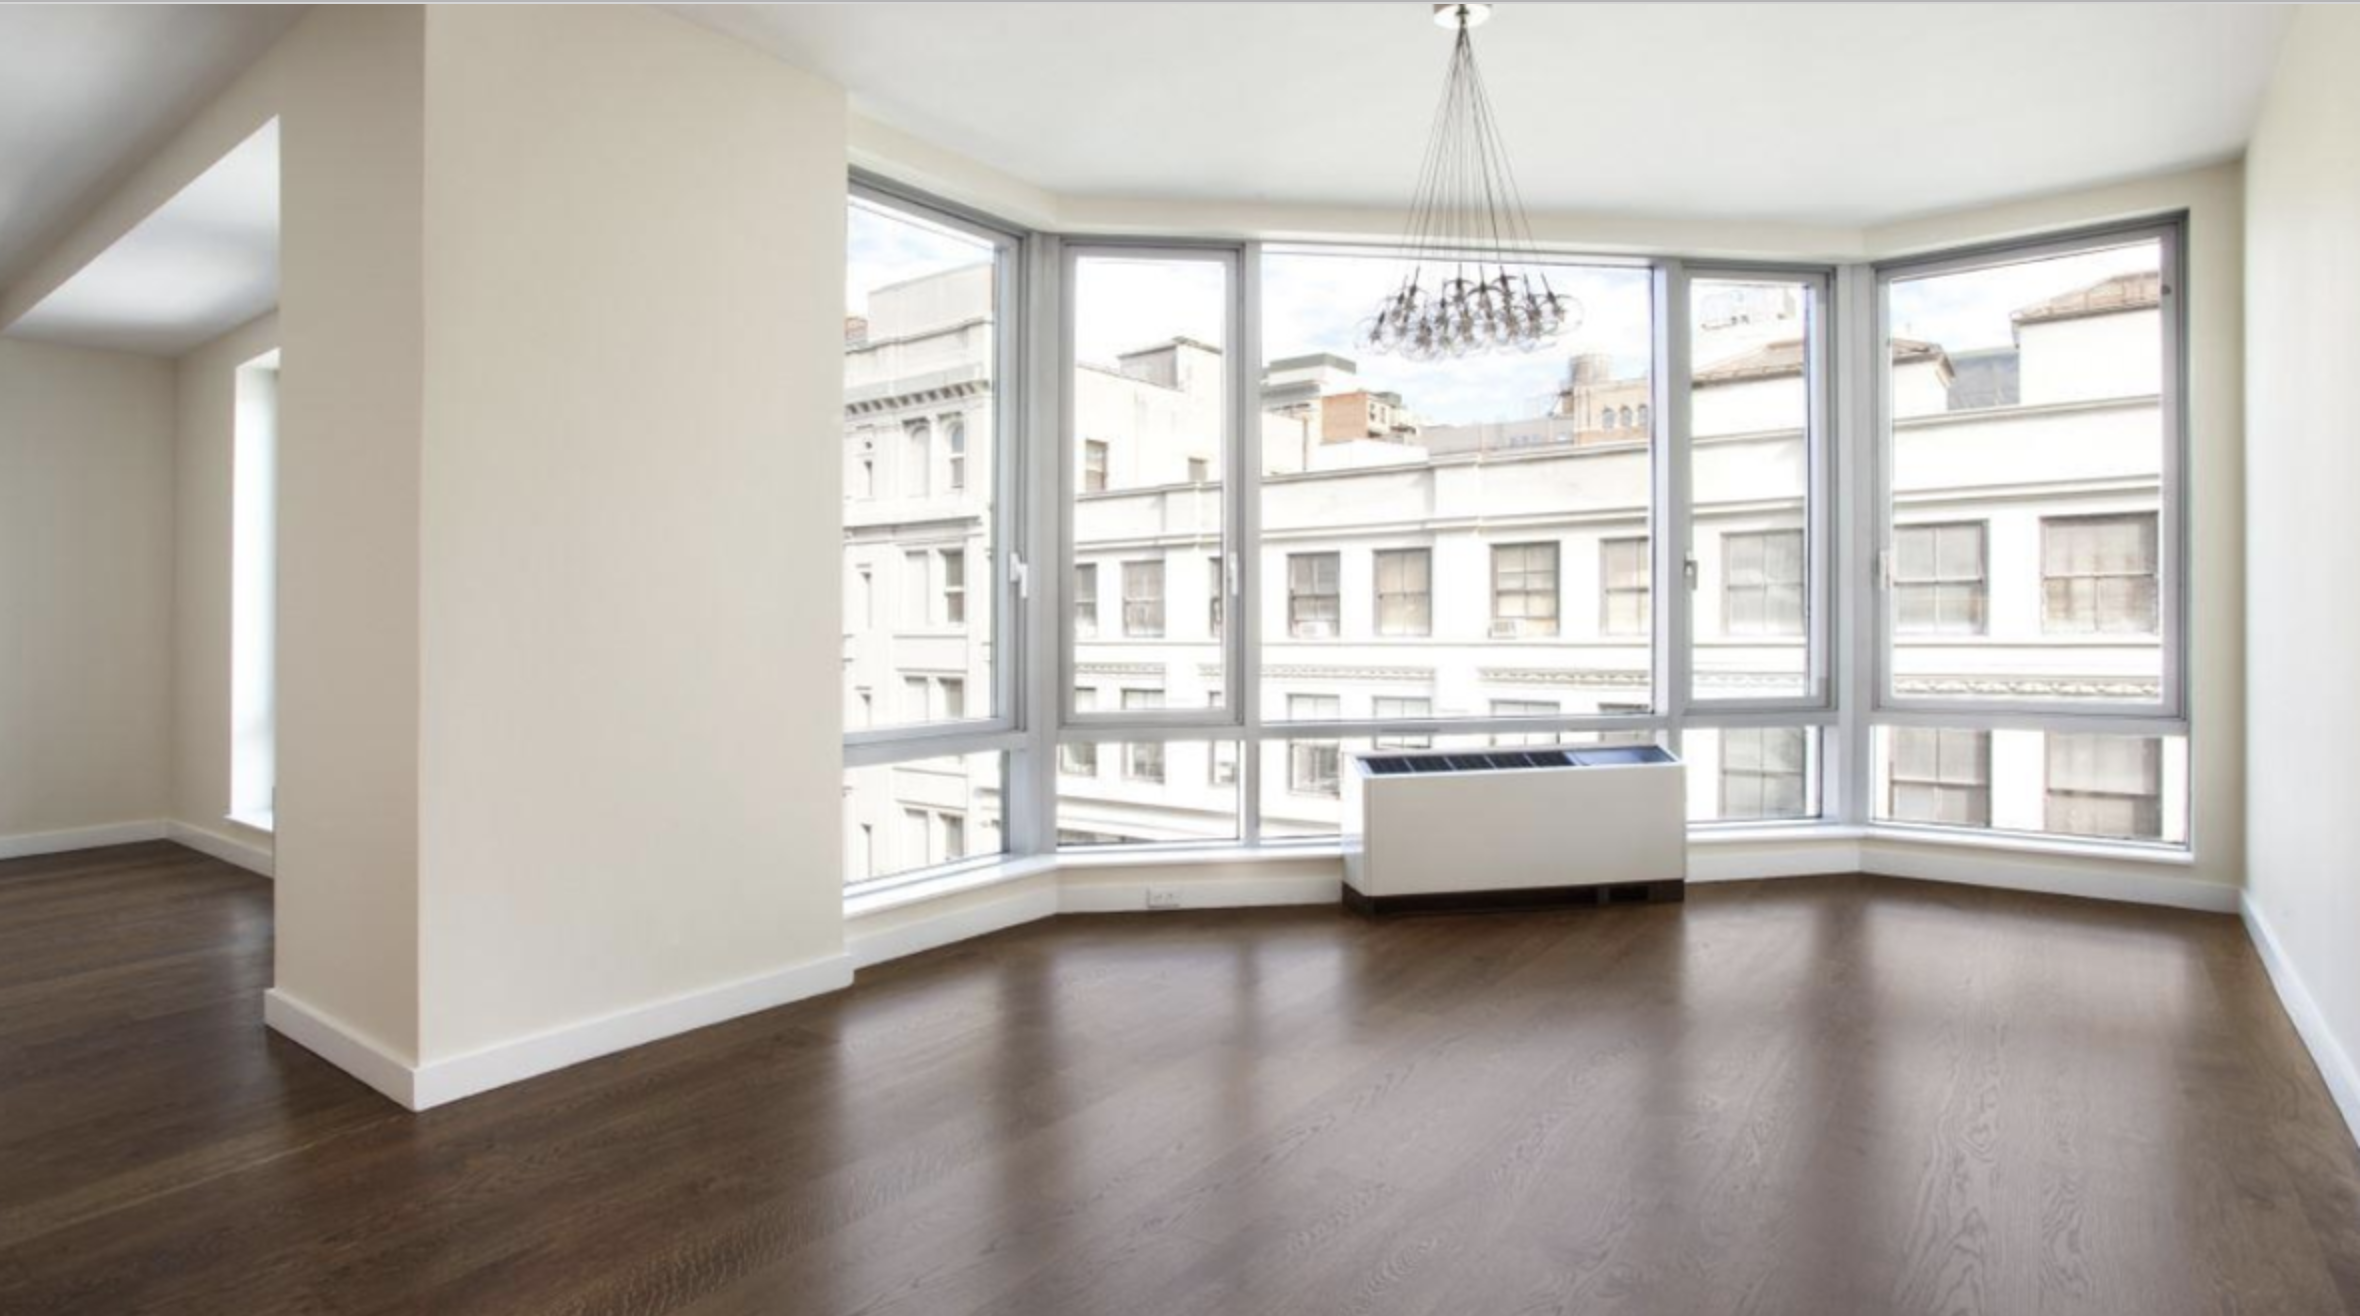 100 West 18th Street              Chelsea, NYC      2 BD | 3 BA | $3,400,000